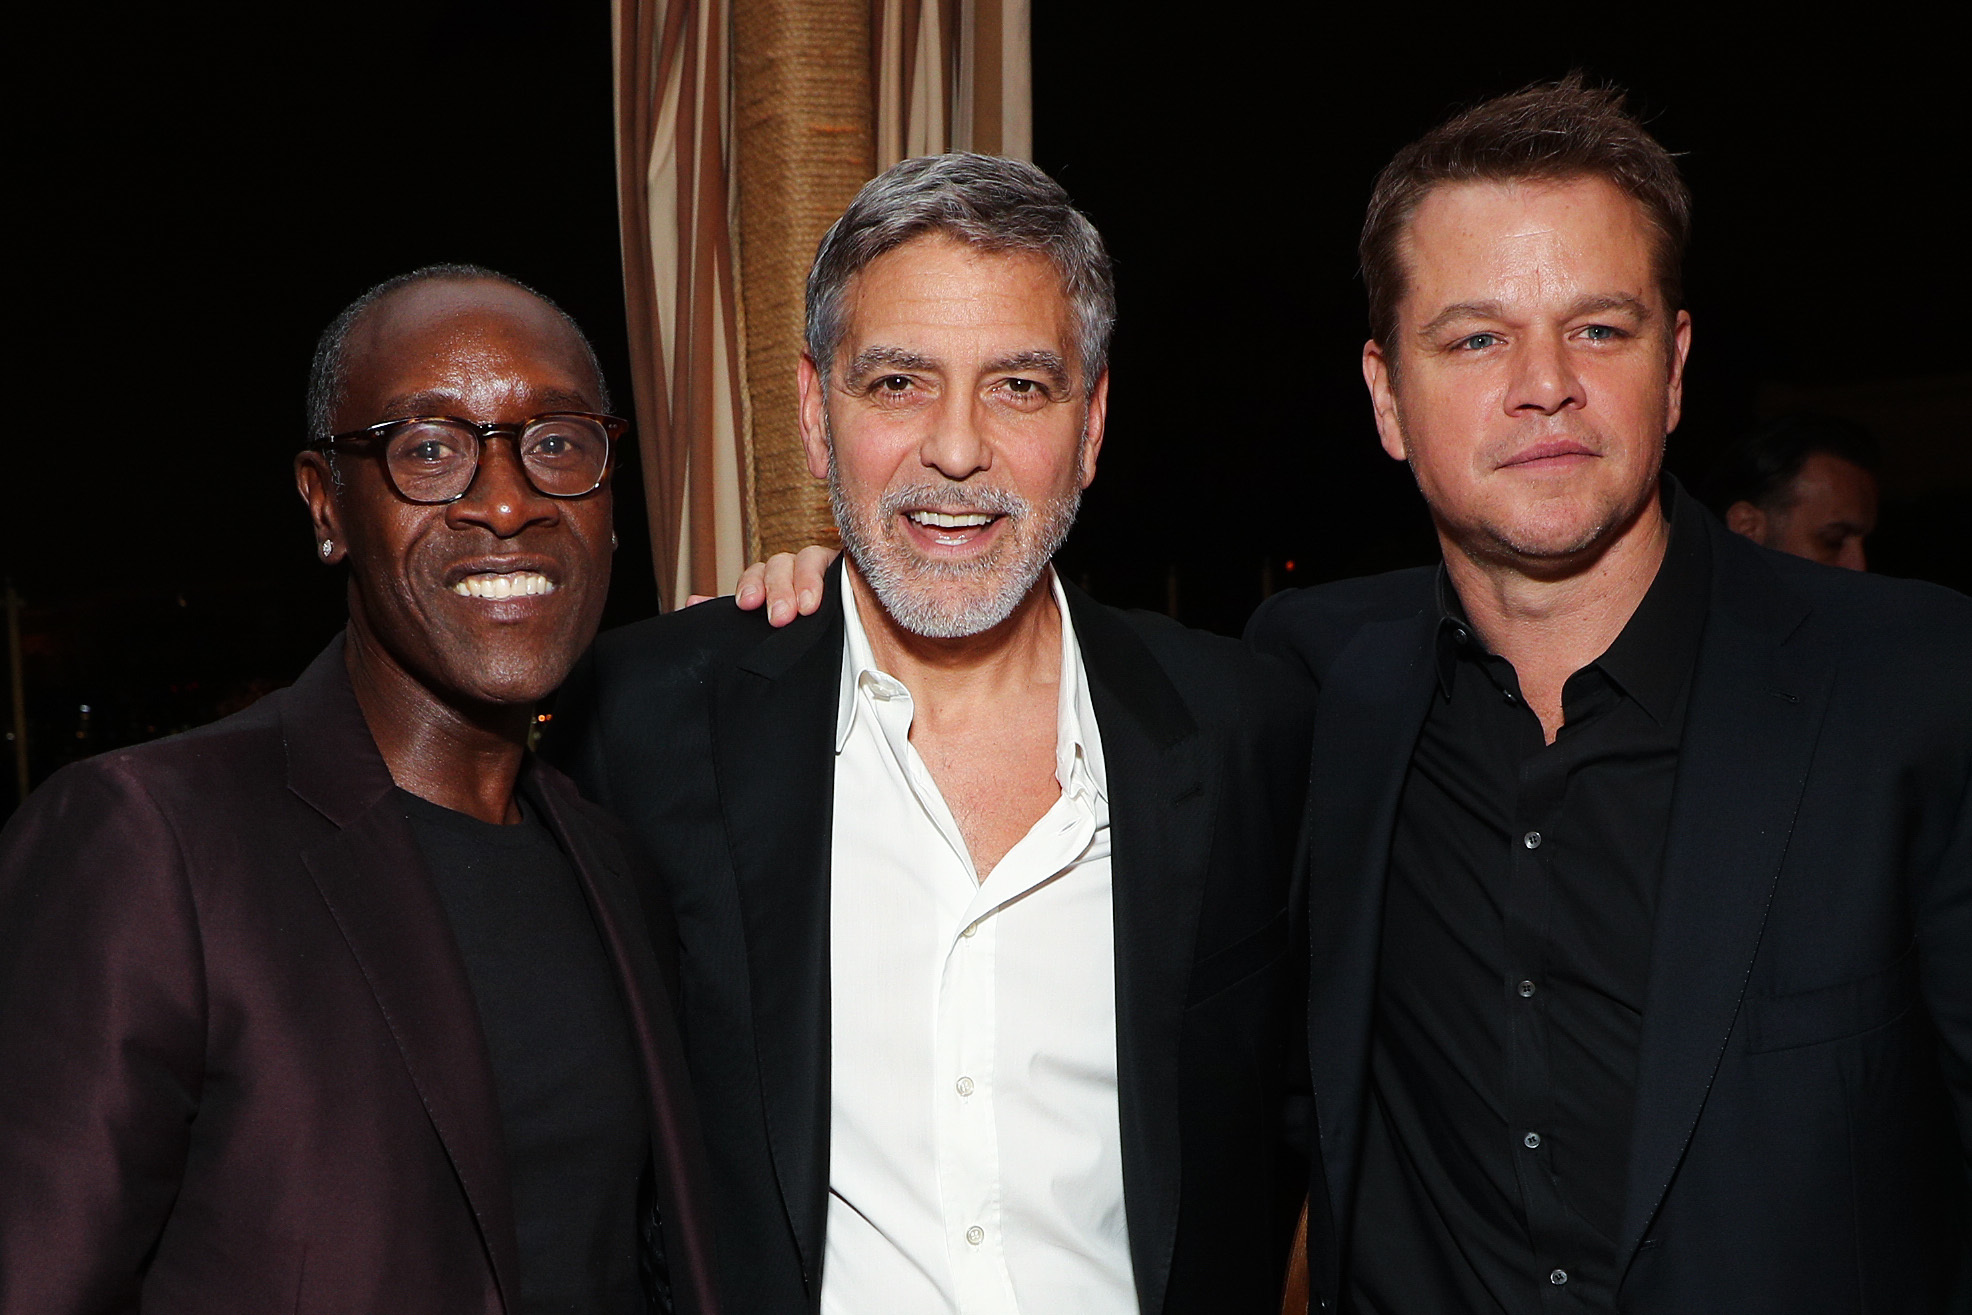 """Don Cheadle, George Clooney and Matt Damon arrive at the premiere of """"Catch 22"""" in Los Angeles on May 7, 2019."""